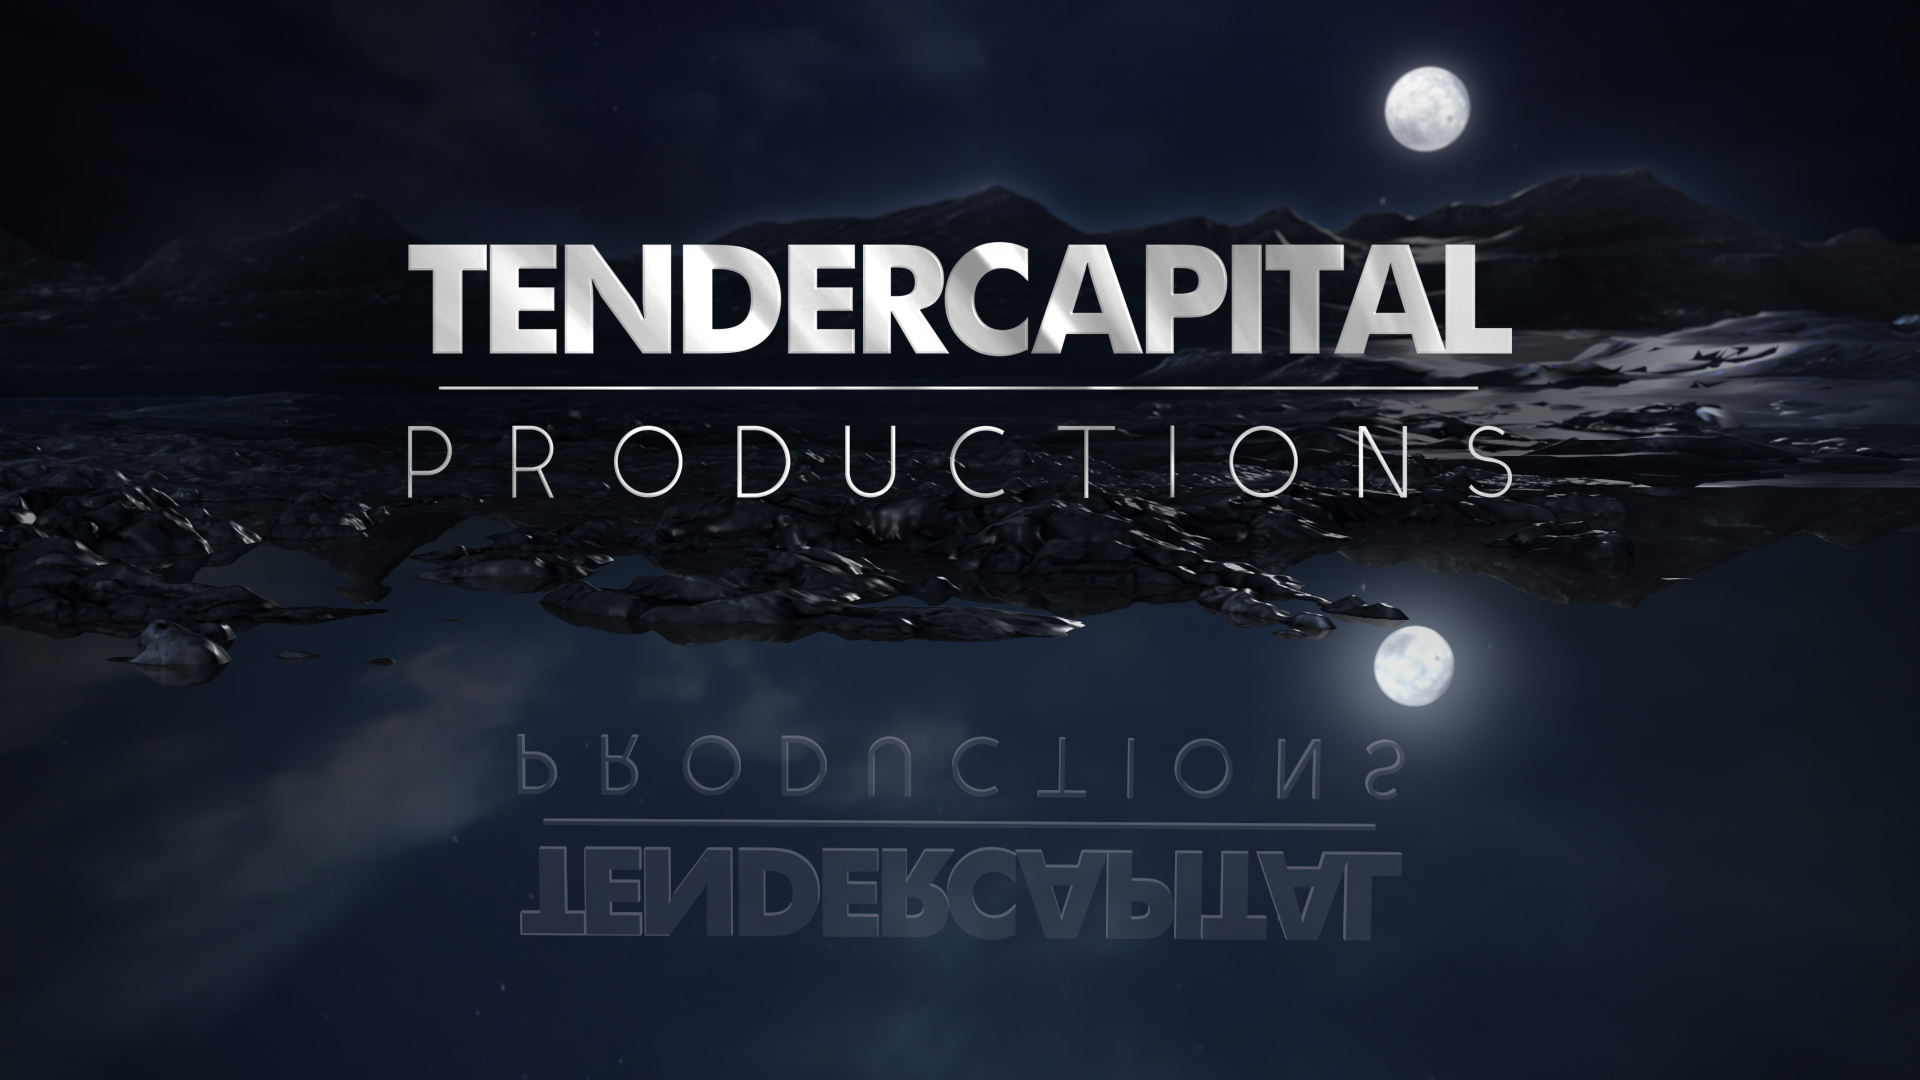 TENDERCAPITAL